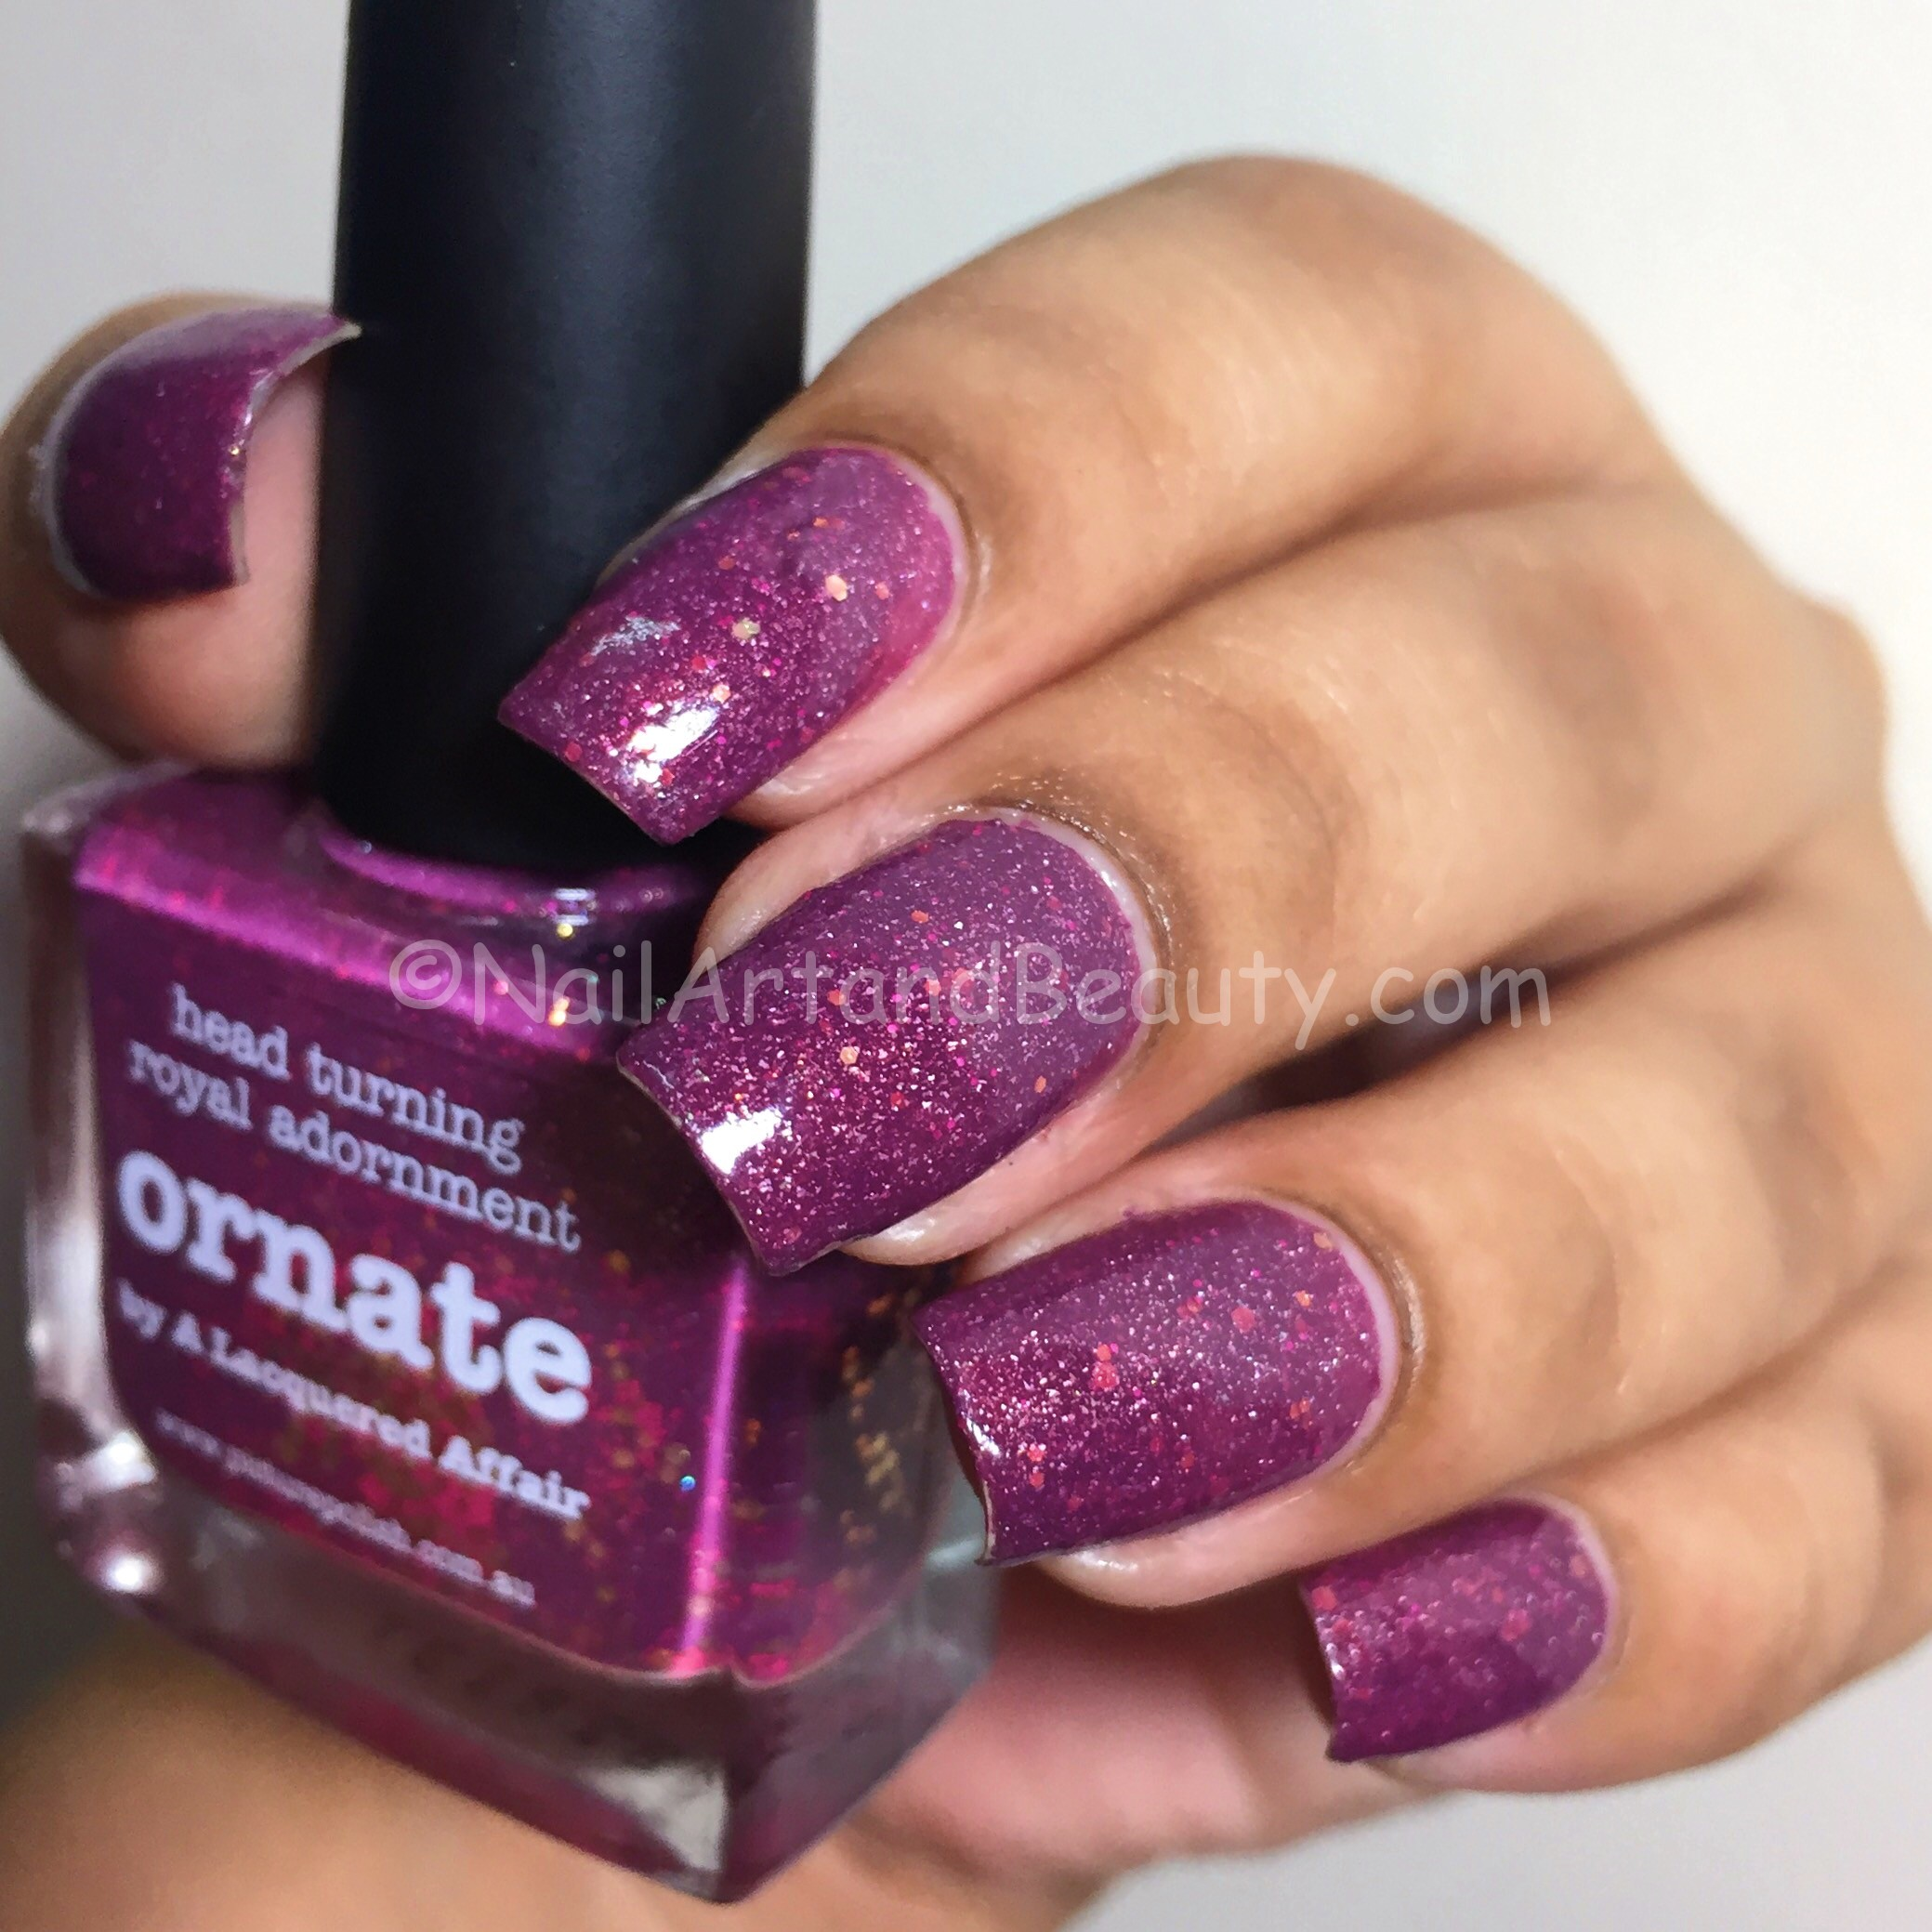 swatch-of-picture-polish-ornate-in-artficial-light